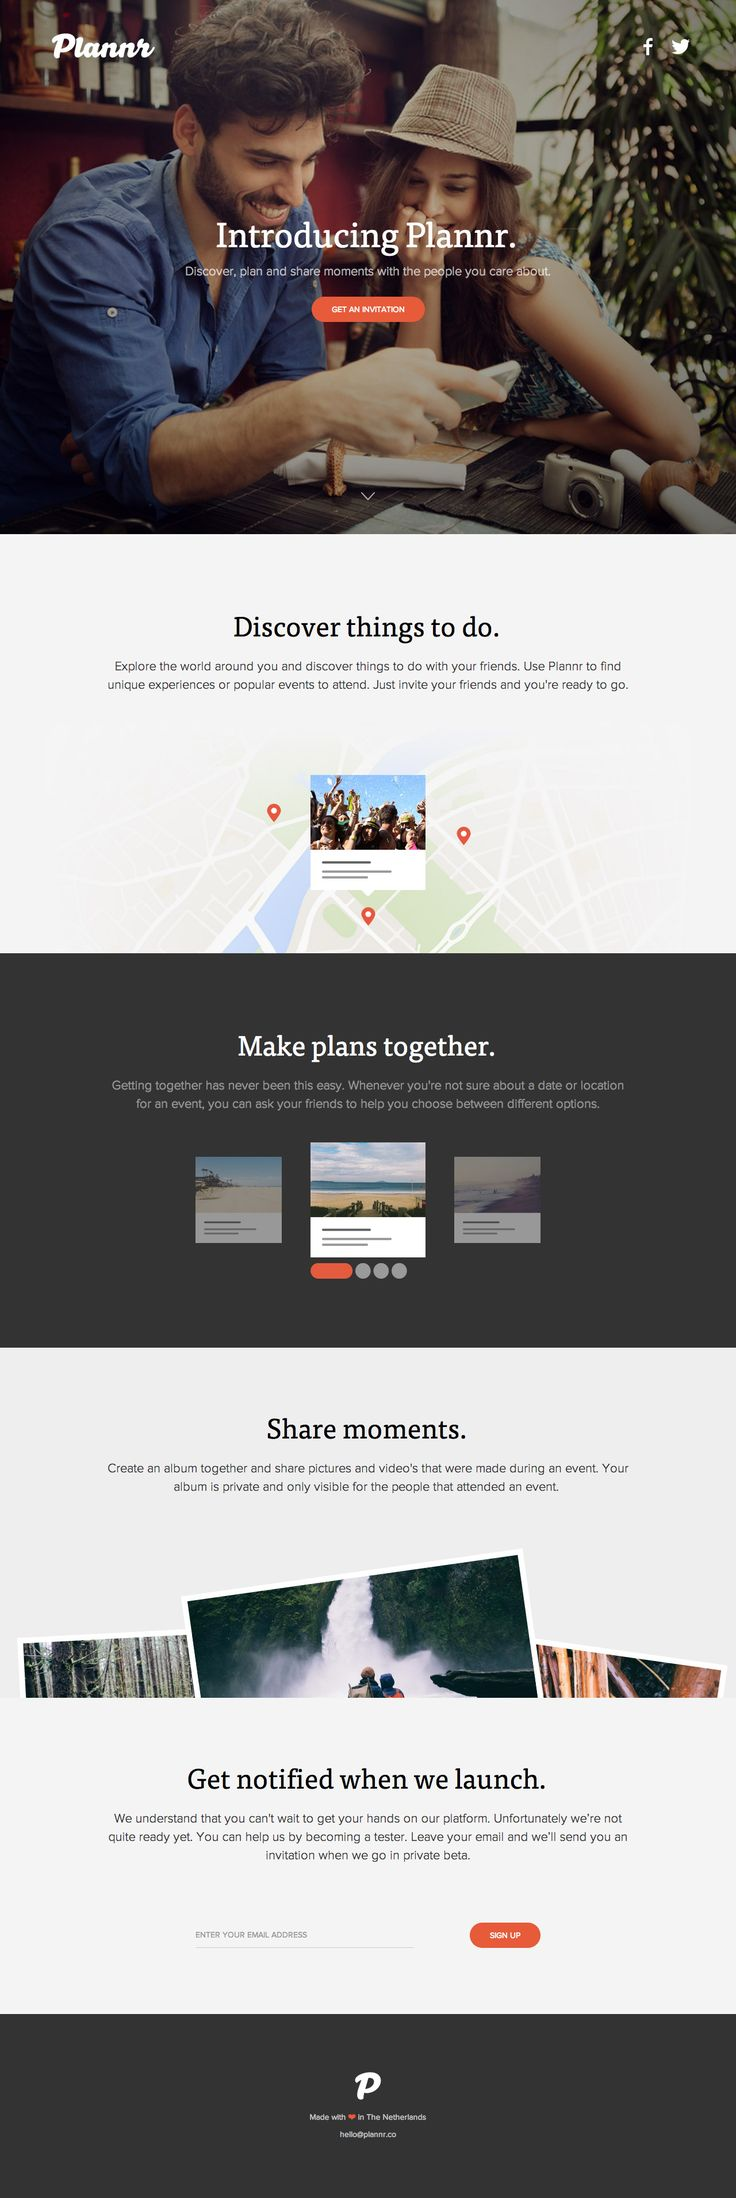 Responsive launching soon page for new startup 'Plannr' that claims to be a social platform to discover, plan and share moments together. Great choice of big intro image.